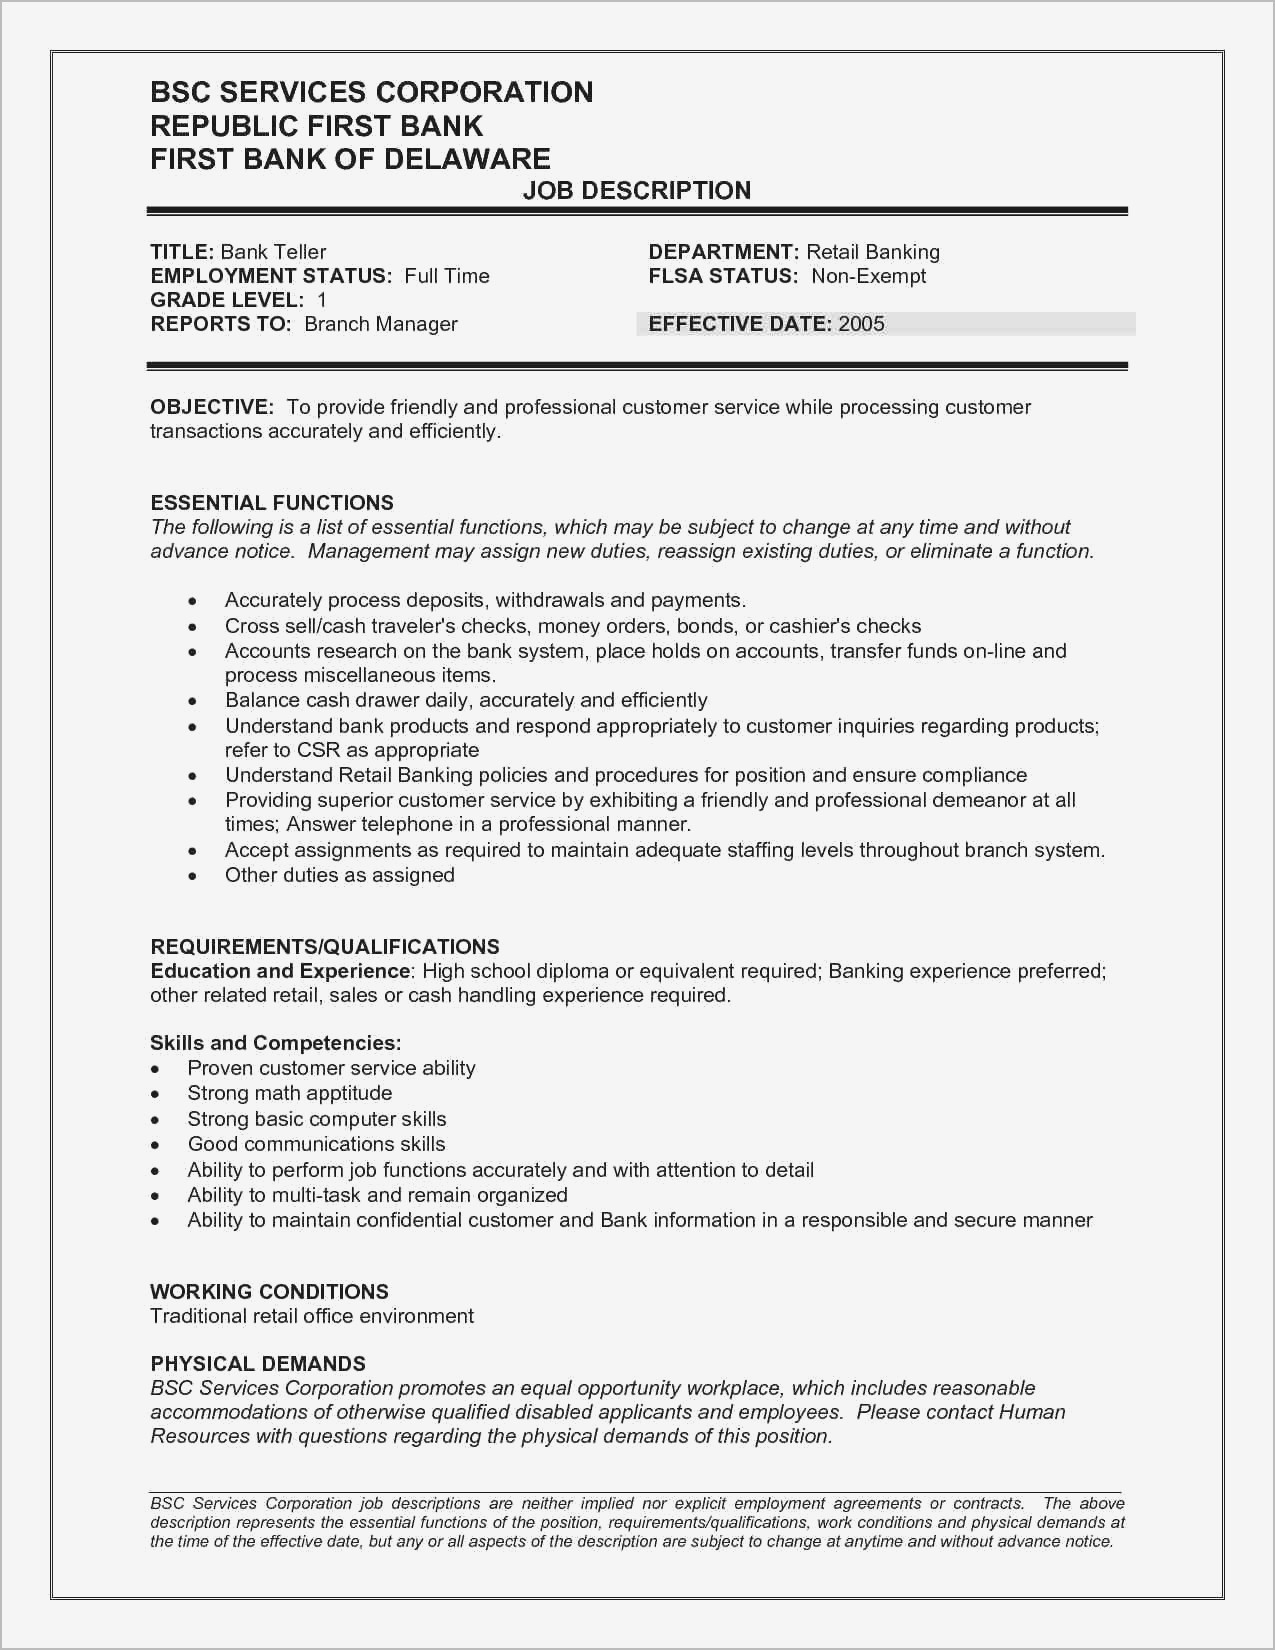 Retail Manager Resume Examples - Basic Resume Examples for Retail Jobs Resume Resume Examples